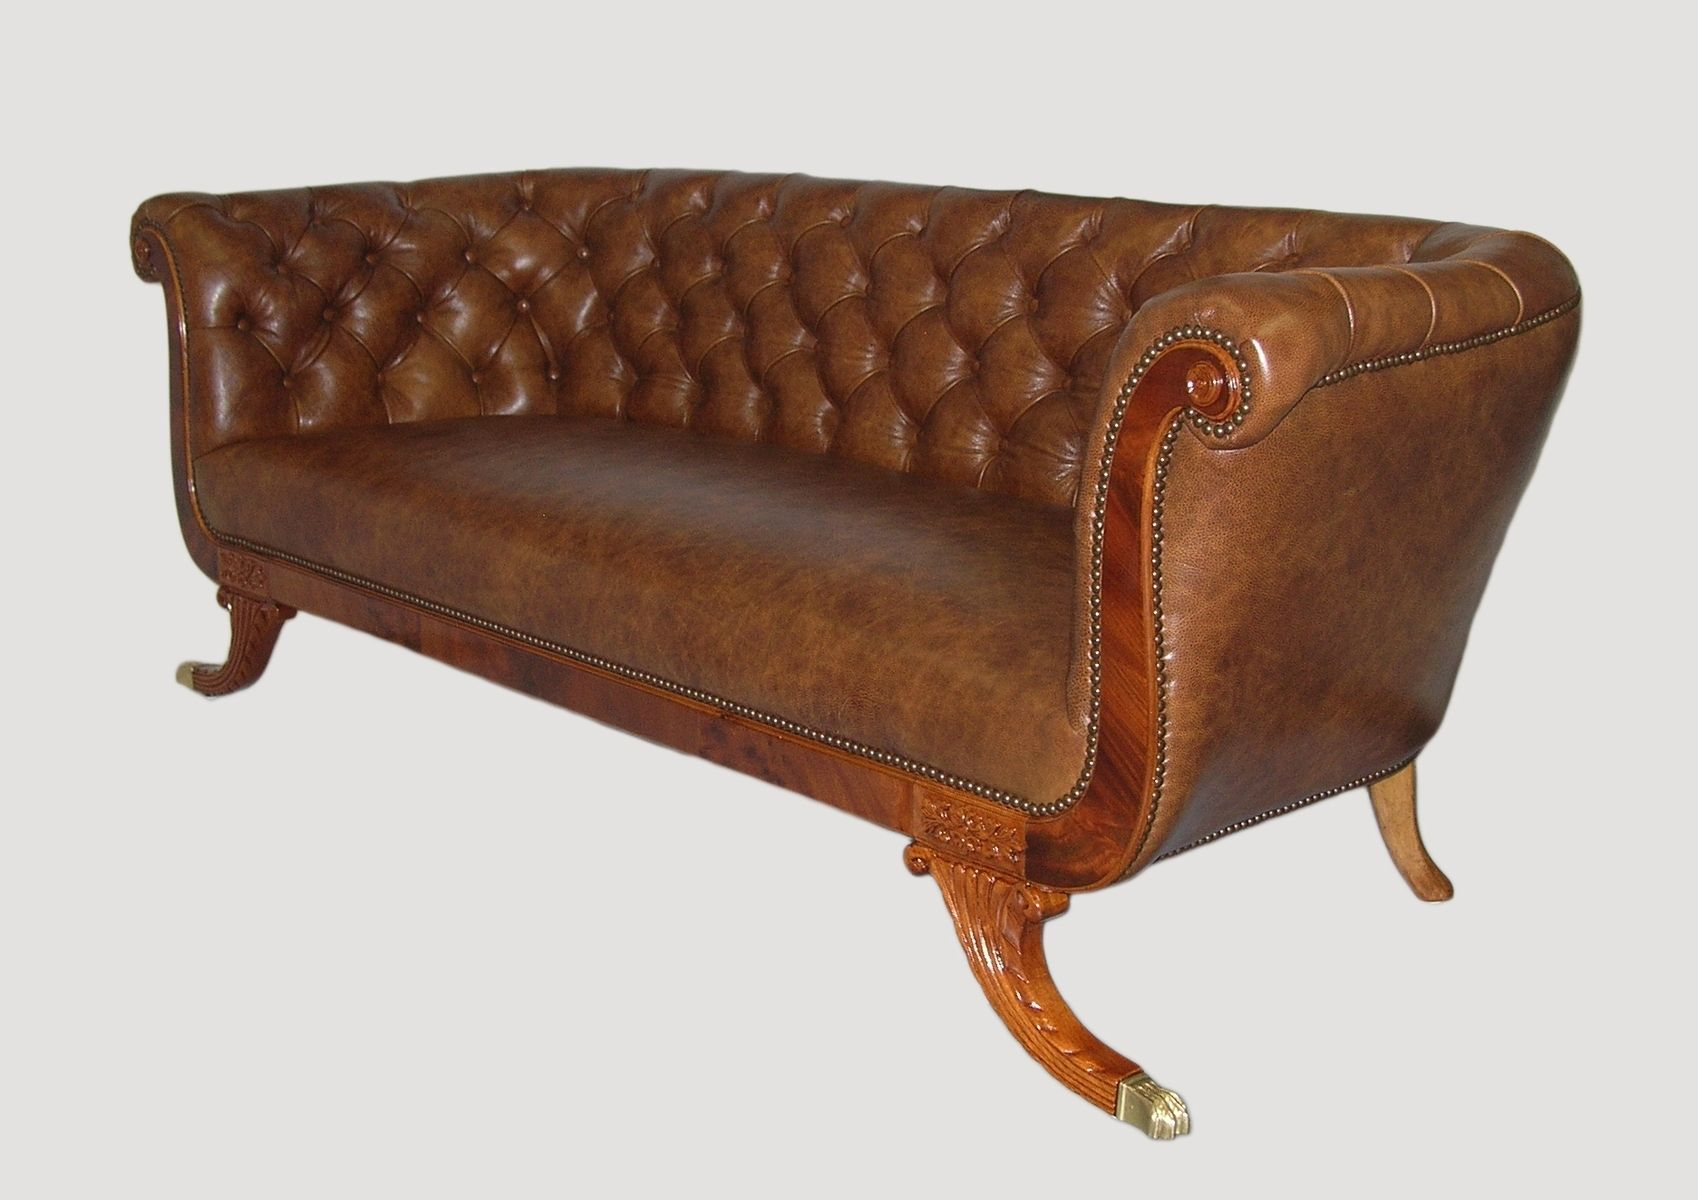 Buy a Hand Made Chesterfield Style Sofa, made to order from CLASSICELEGANCELLC CustomMade com